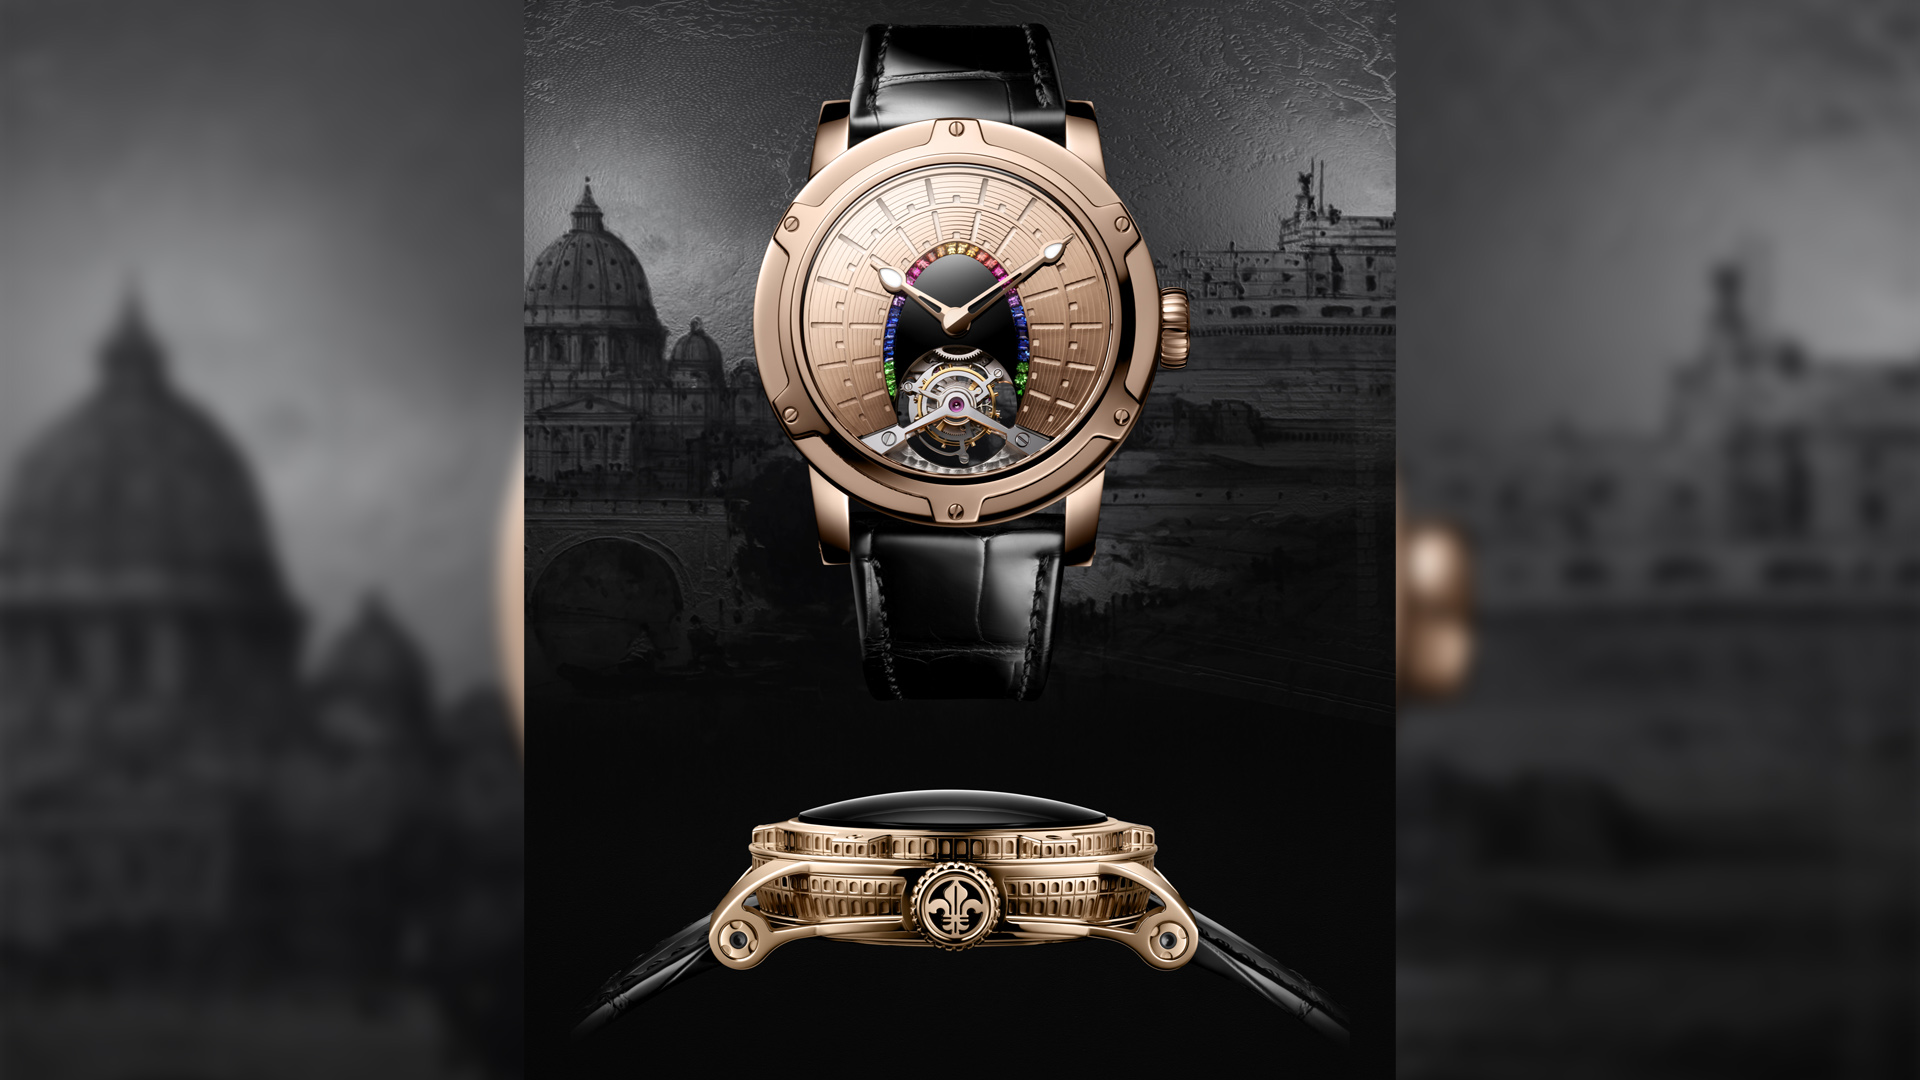 Exquisite watch collection dedicated to eight marvels of the world